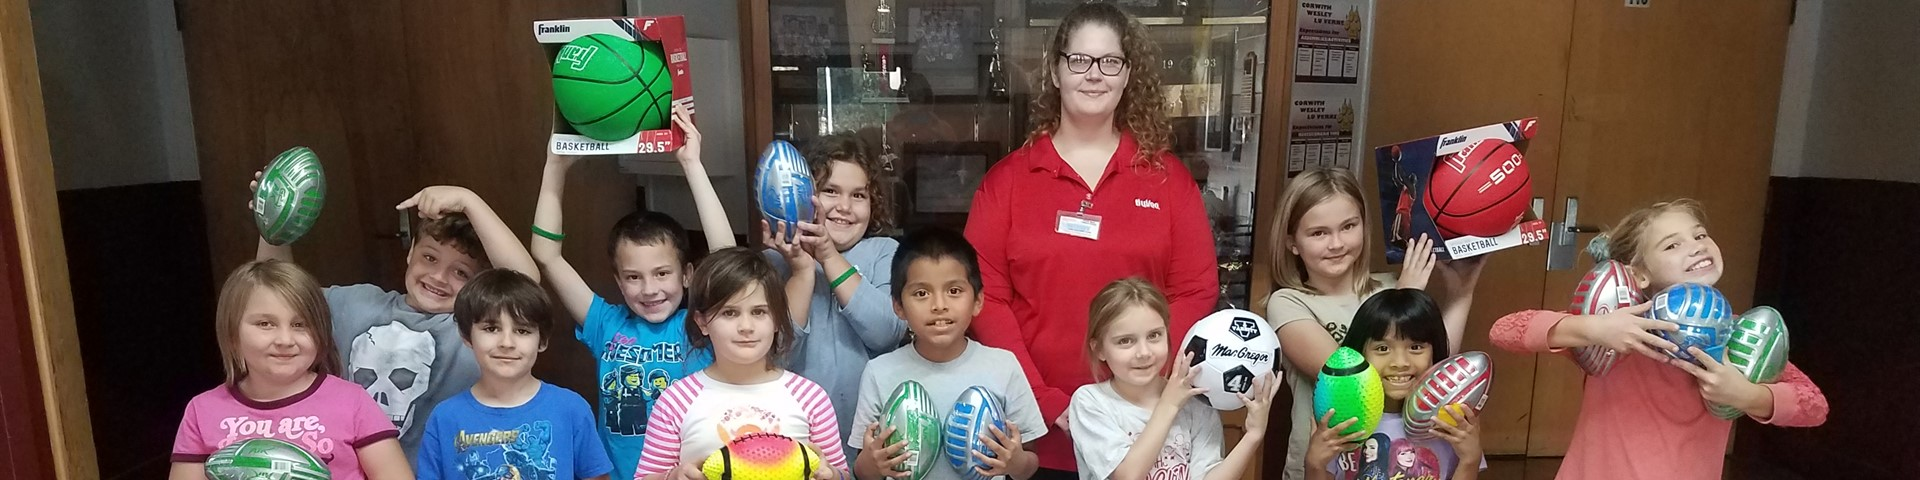 Hy Vee Donates School Supplies to CWL Elementary